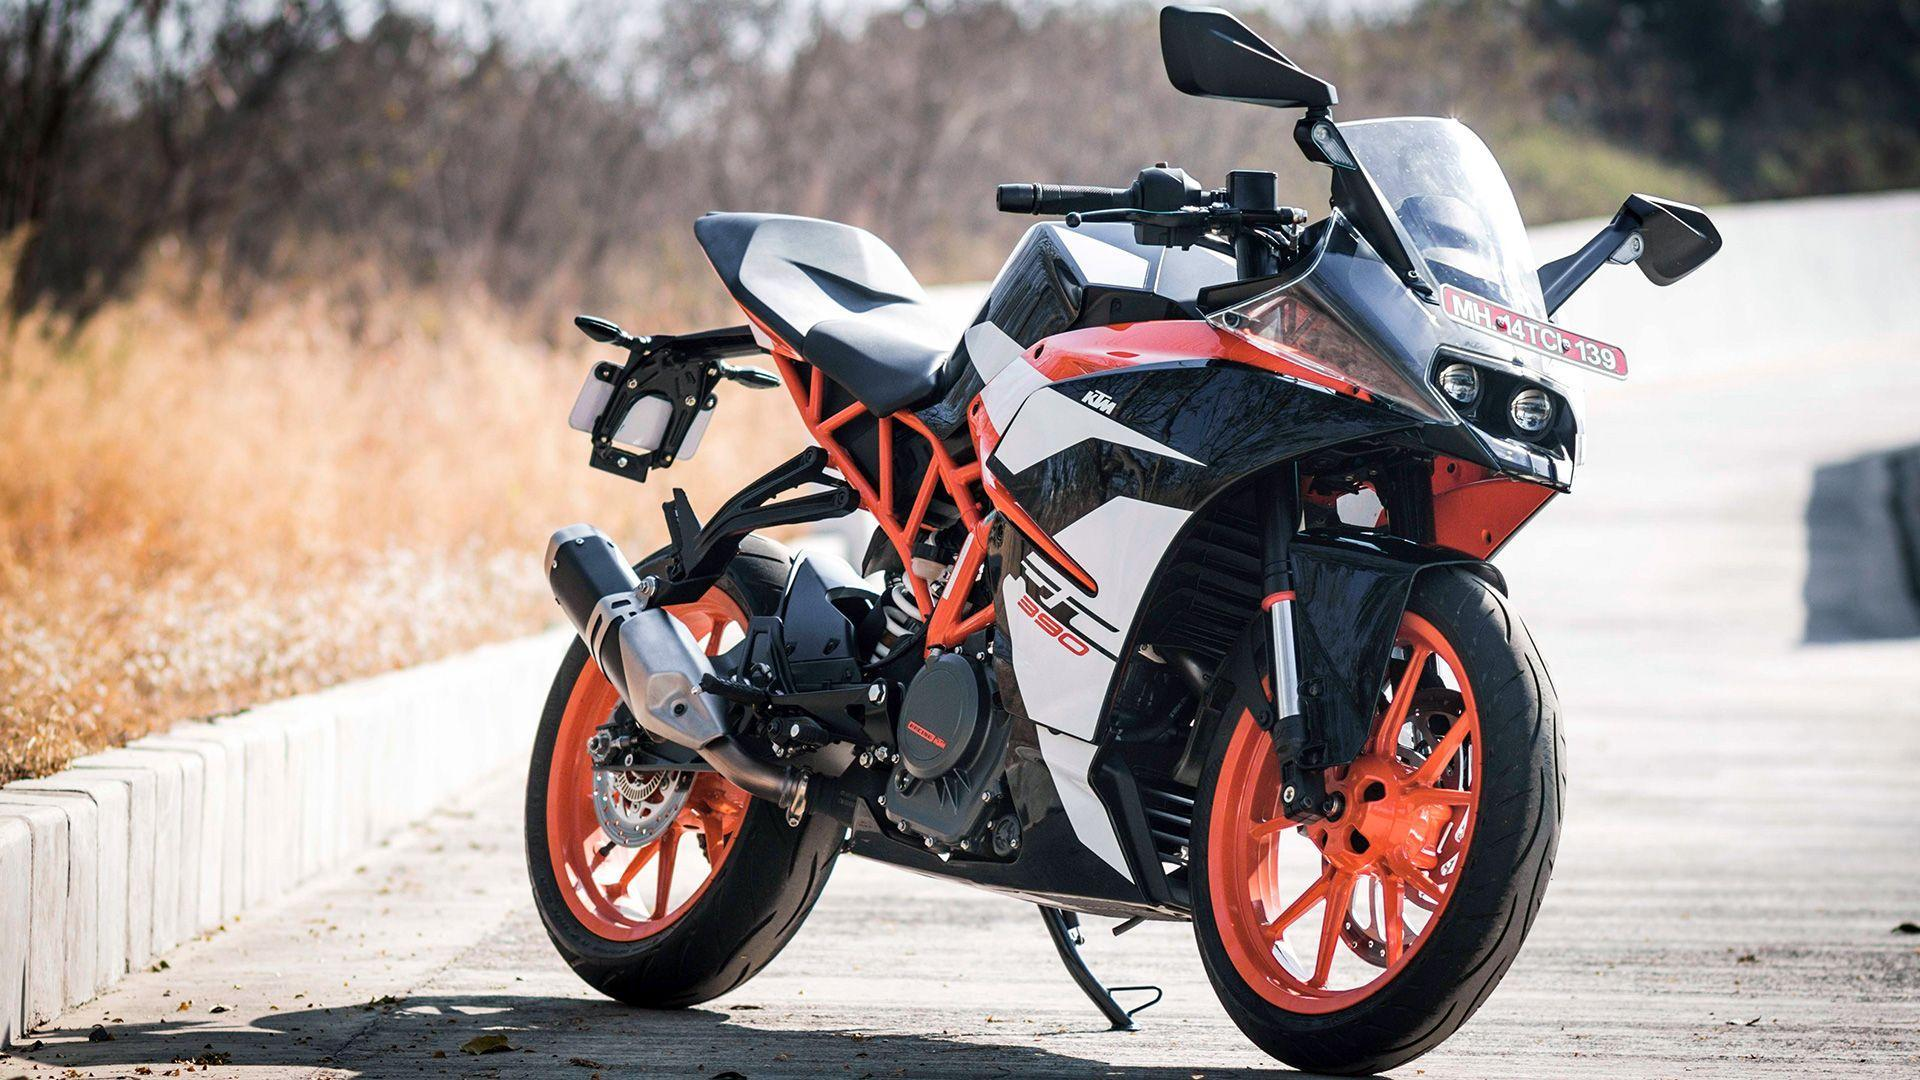 Ktm Duke 390 Wallpaper Hd 1080p Floweryred2 Com